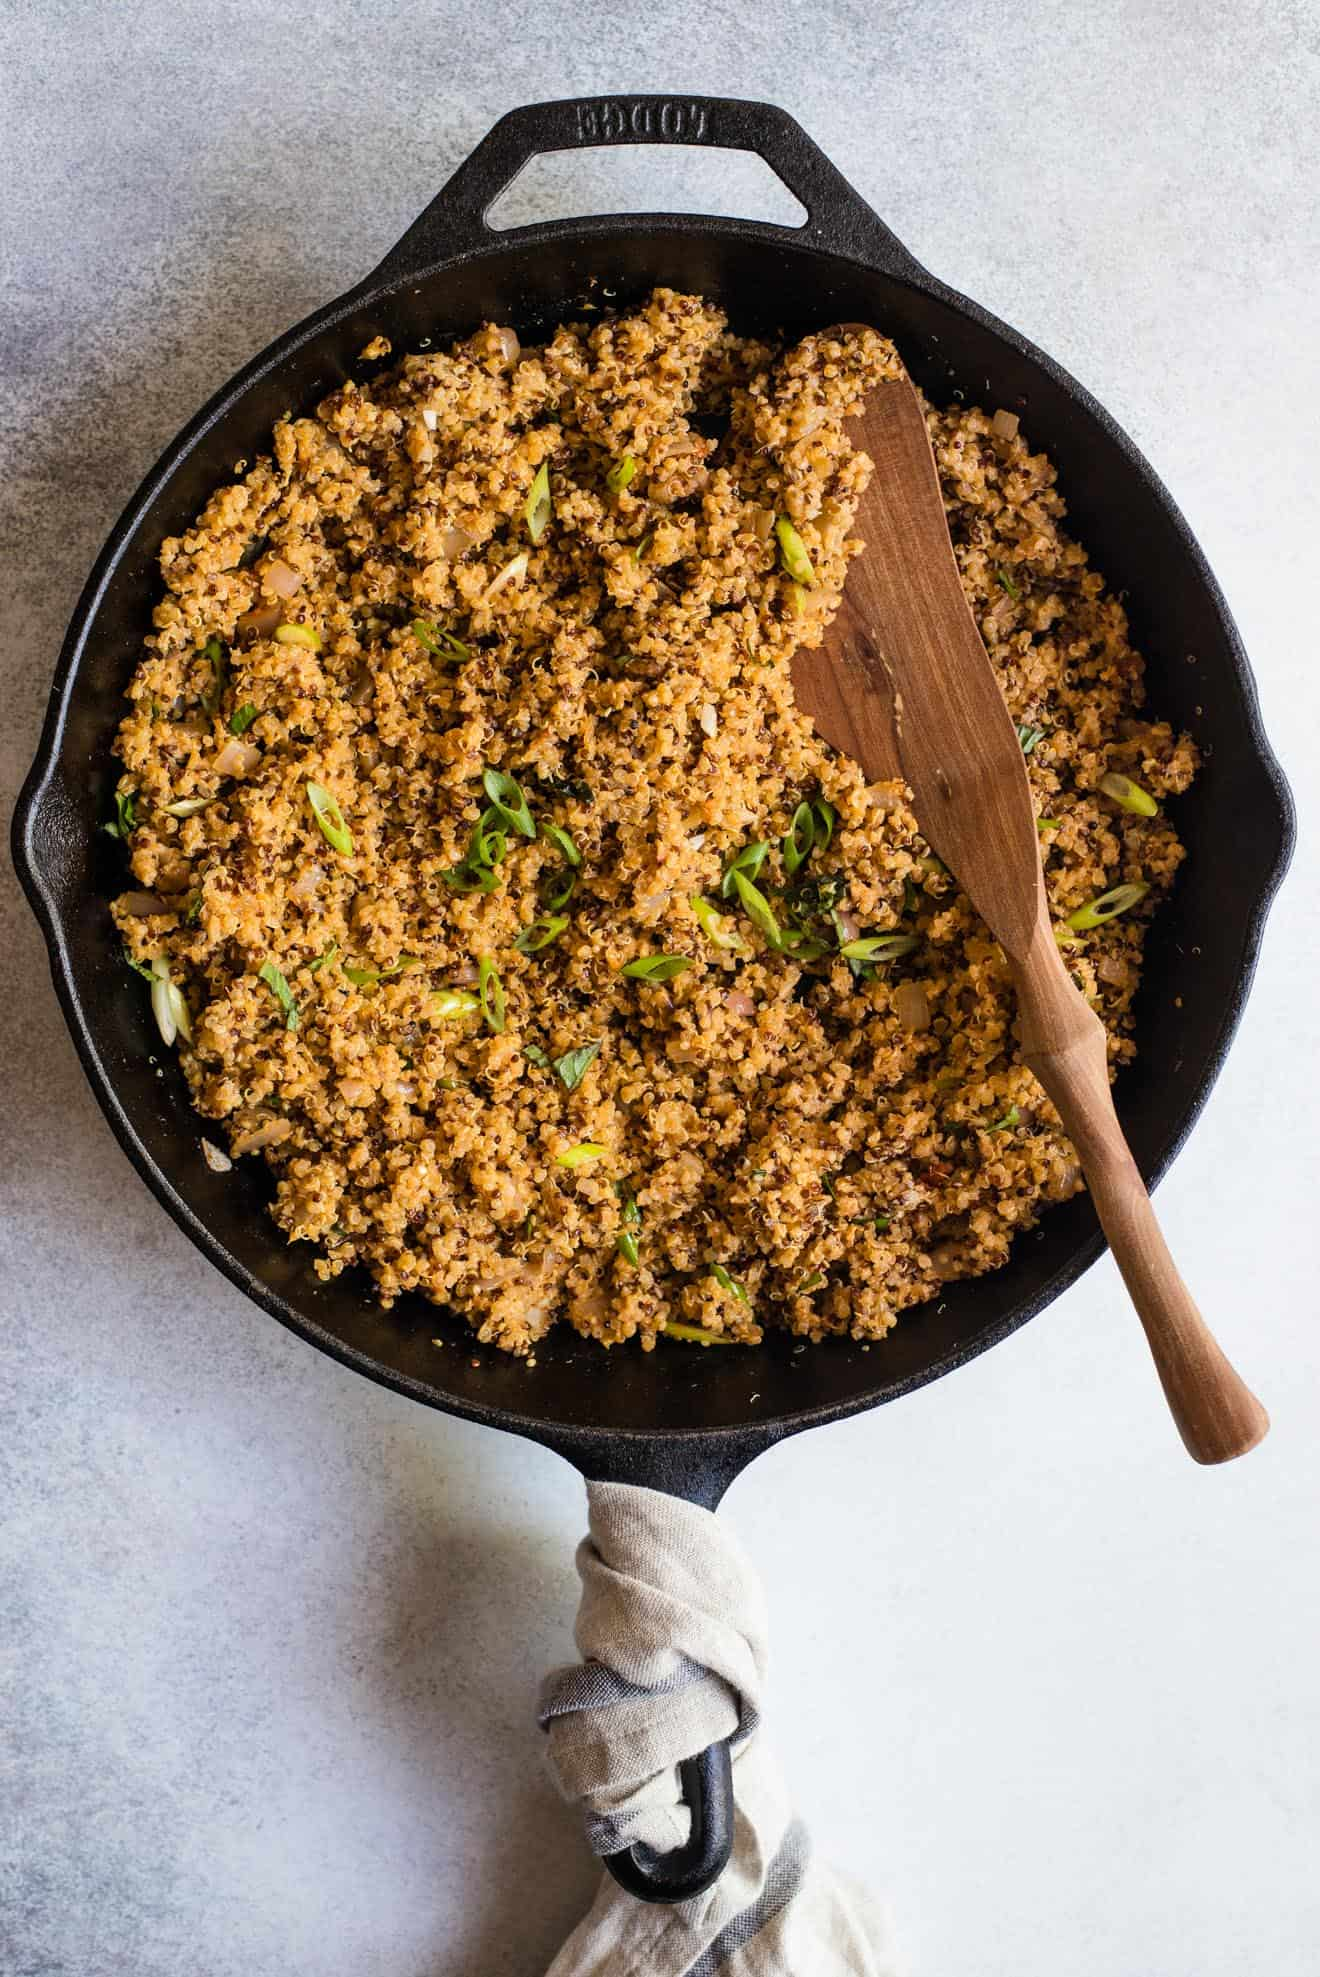 Got leftover curry paste or coconut milk from another recipe? Use it to make this red curry quinoa! It's made with only 8 ingredients and ready in 20 minutes.